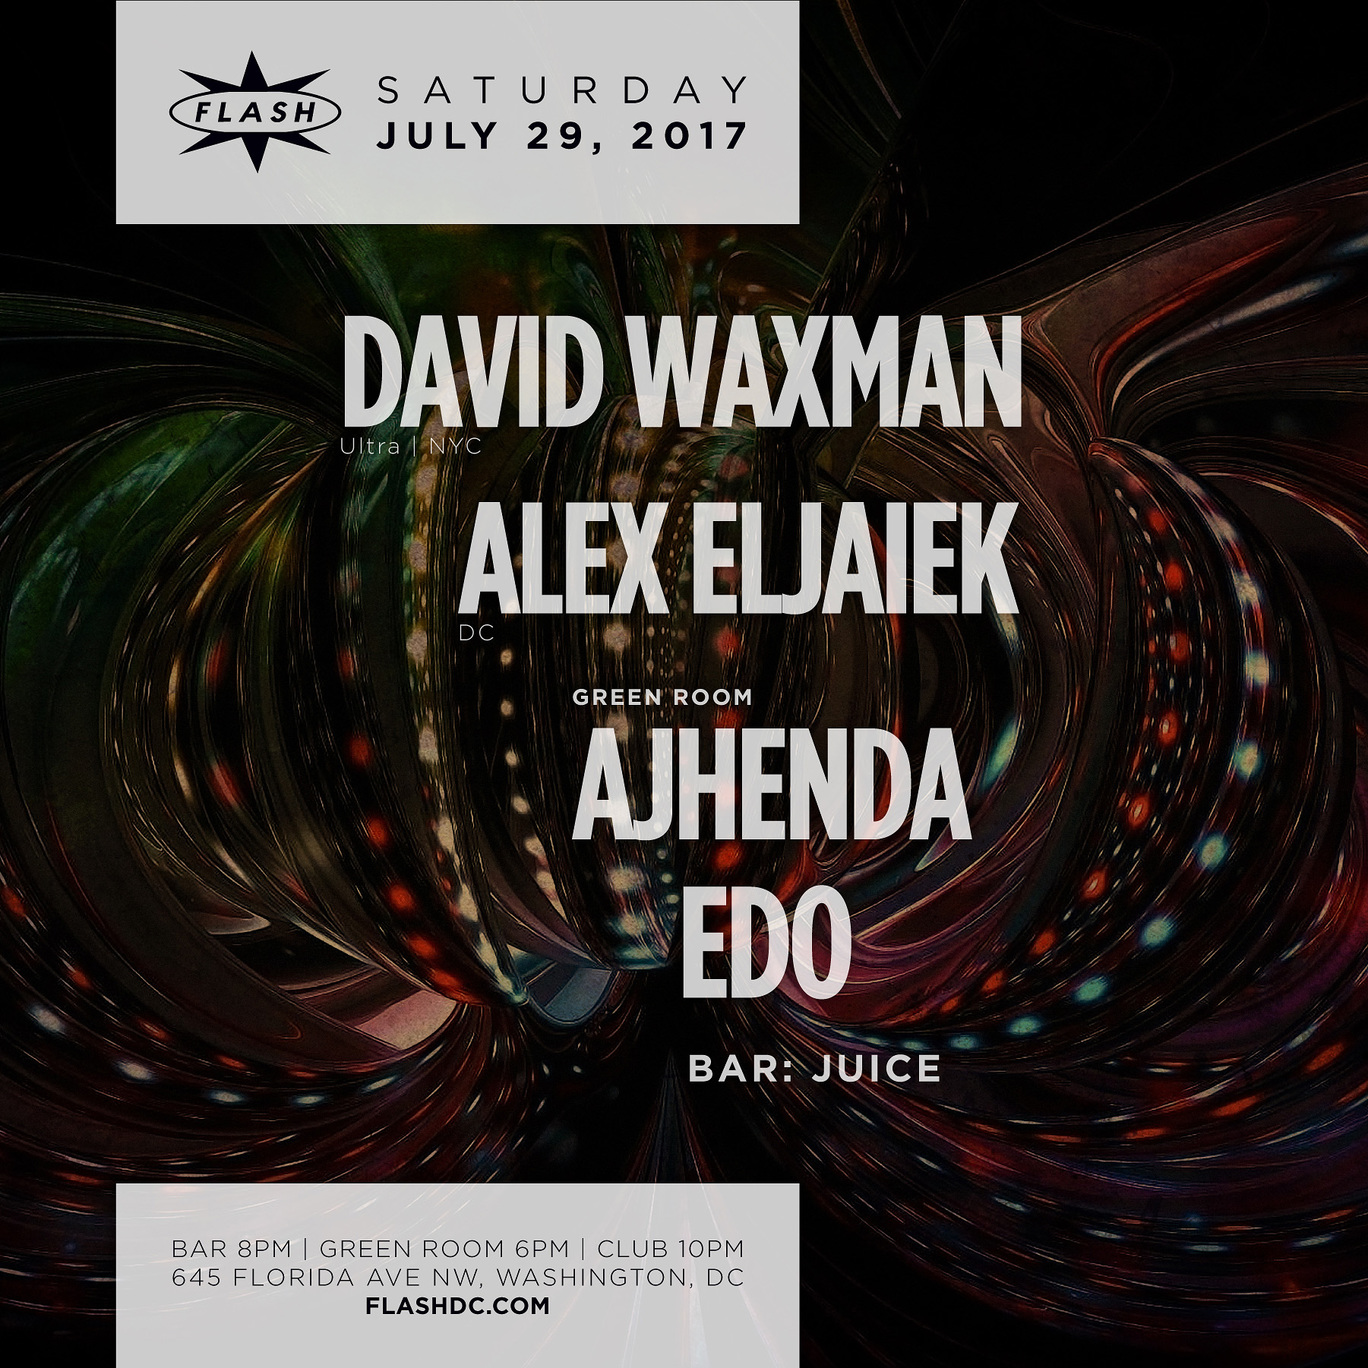 David Waxman - Alex Eljaiek - Ajhenda - Edo - JUICE event thumbnail